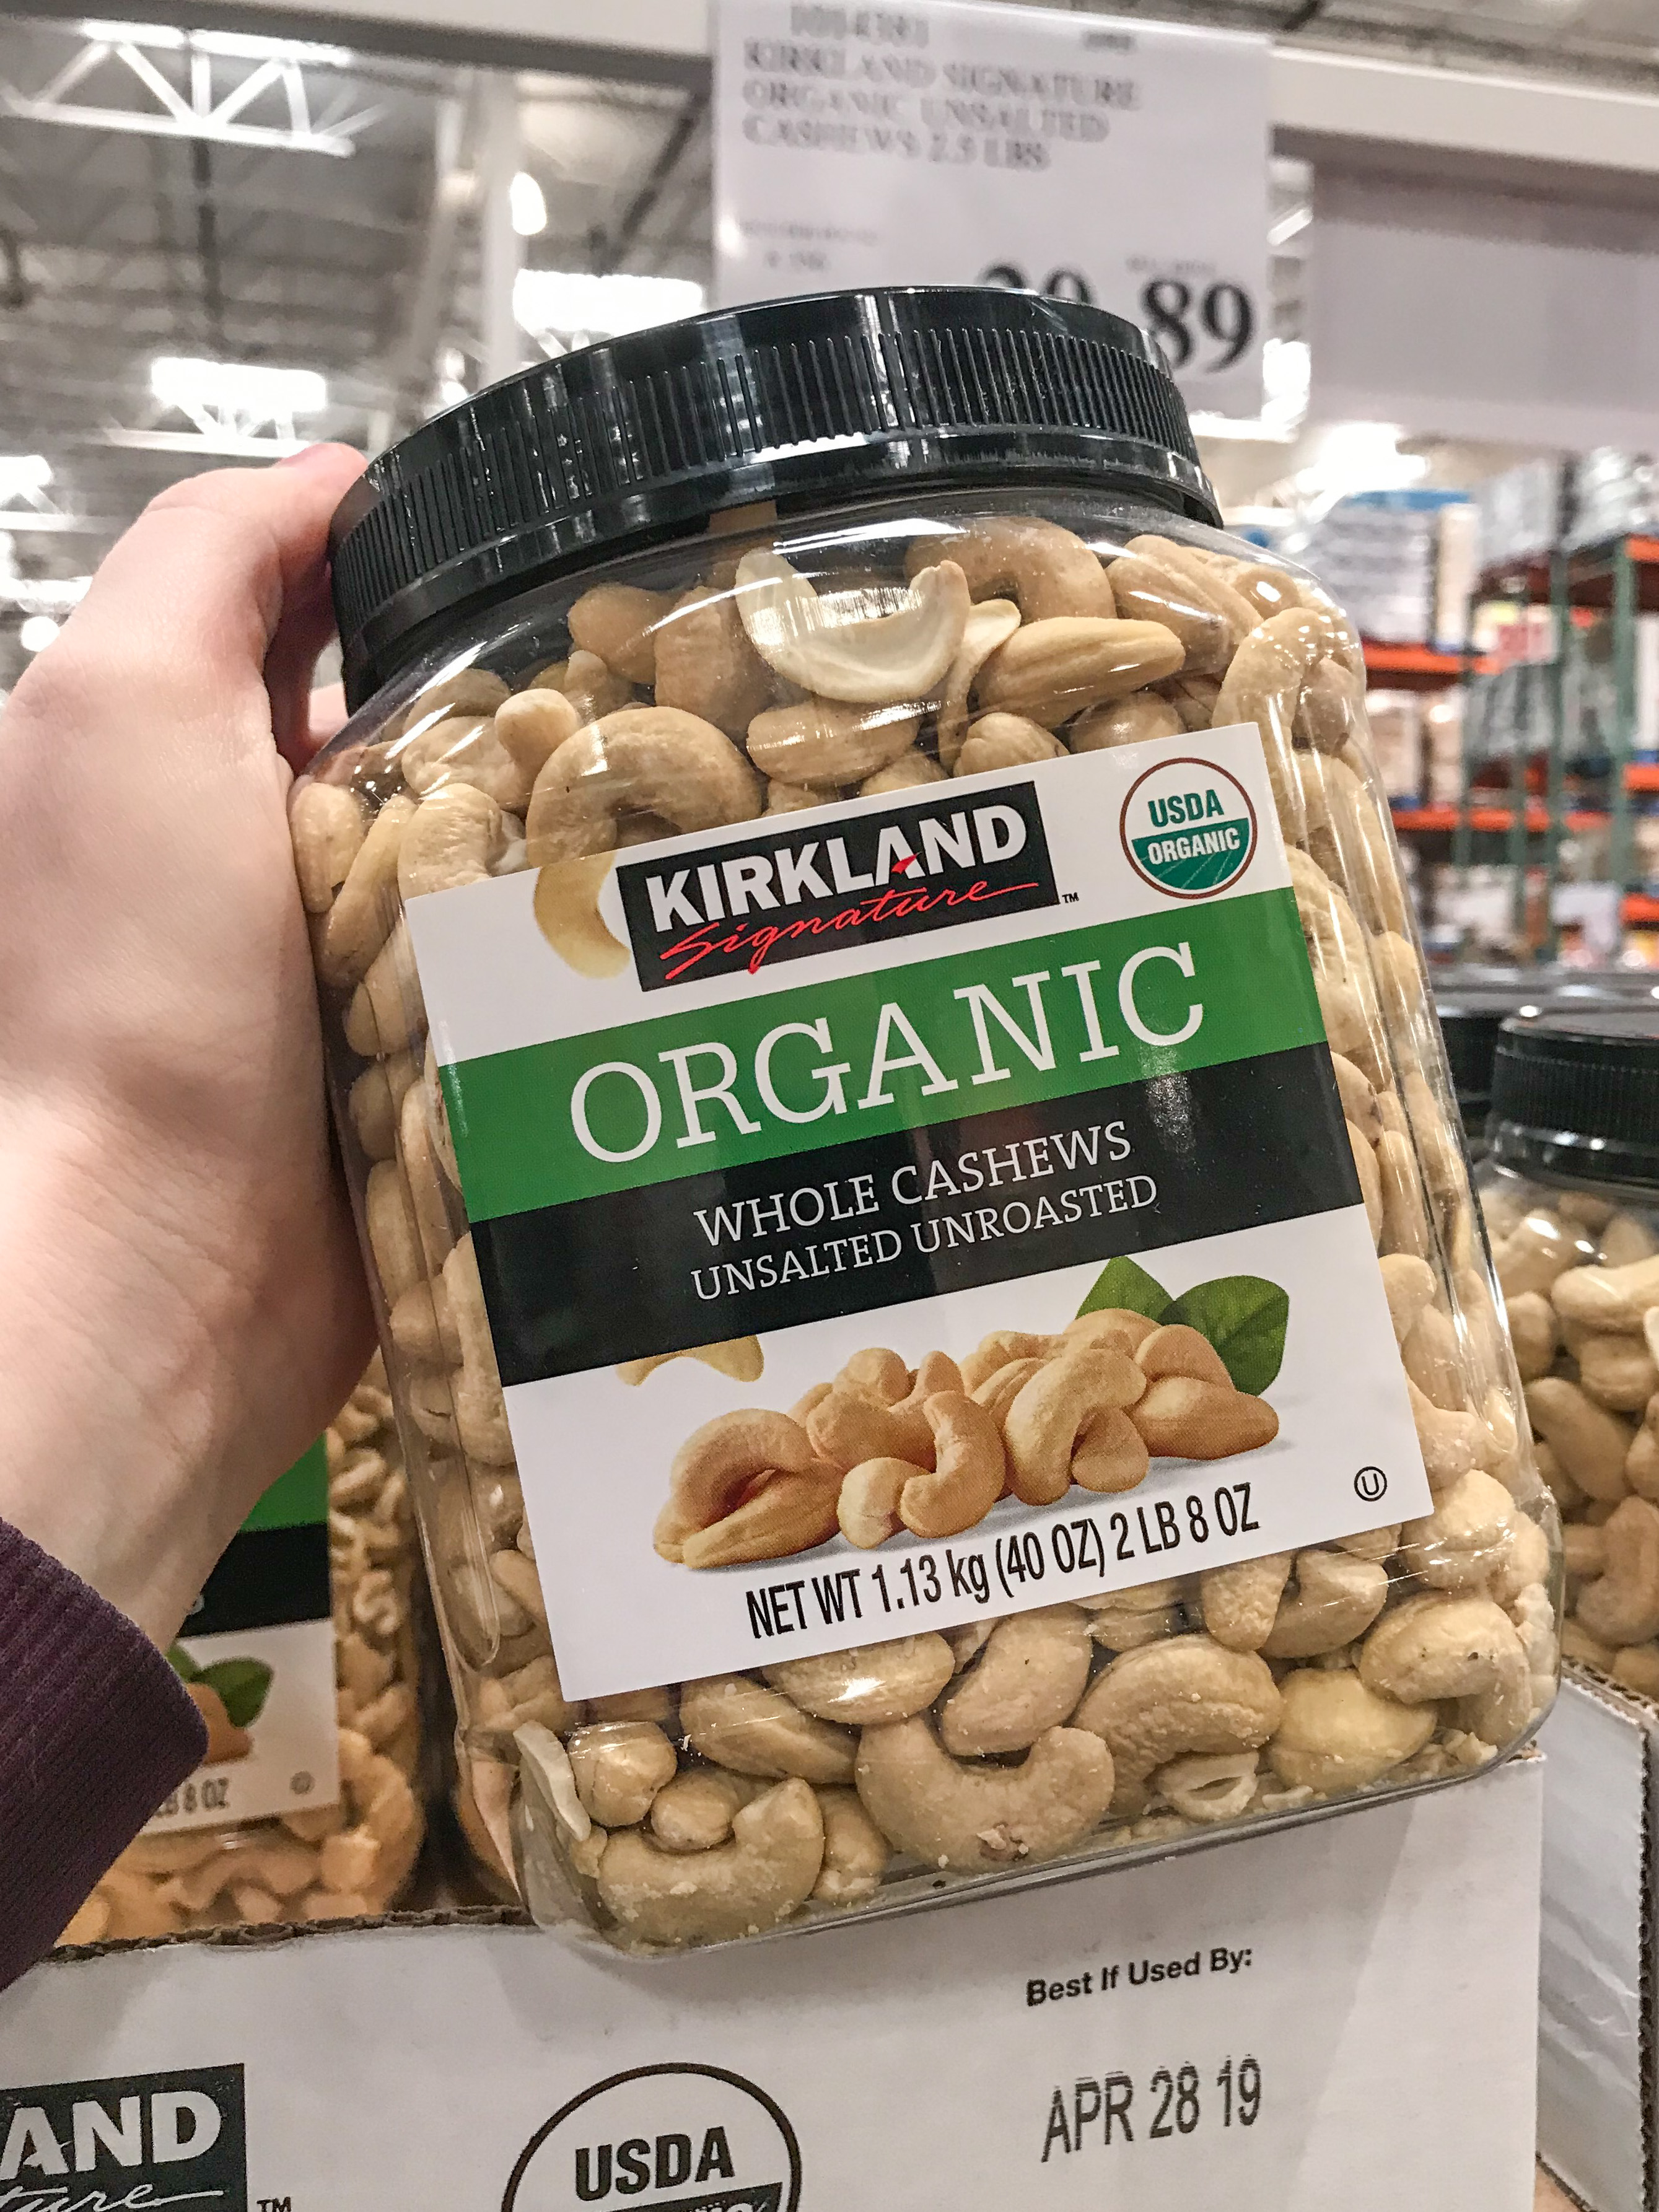 Nuts are one of the best snacks to buy at costco